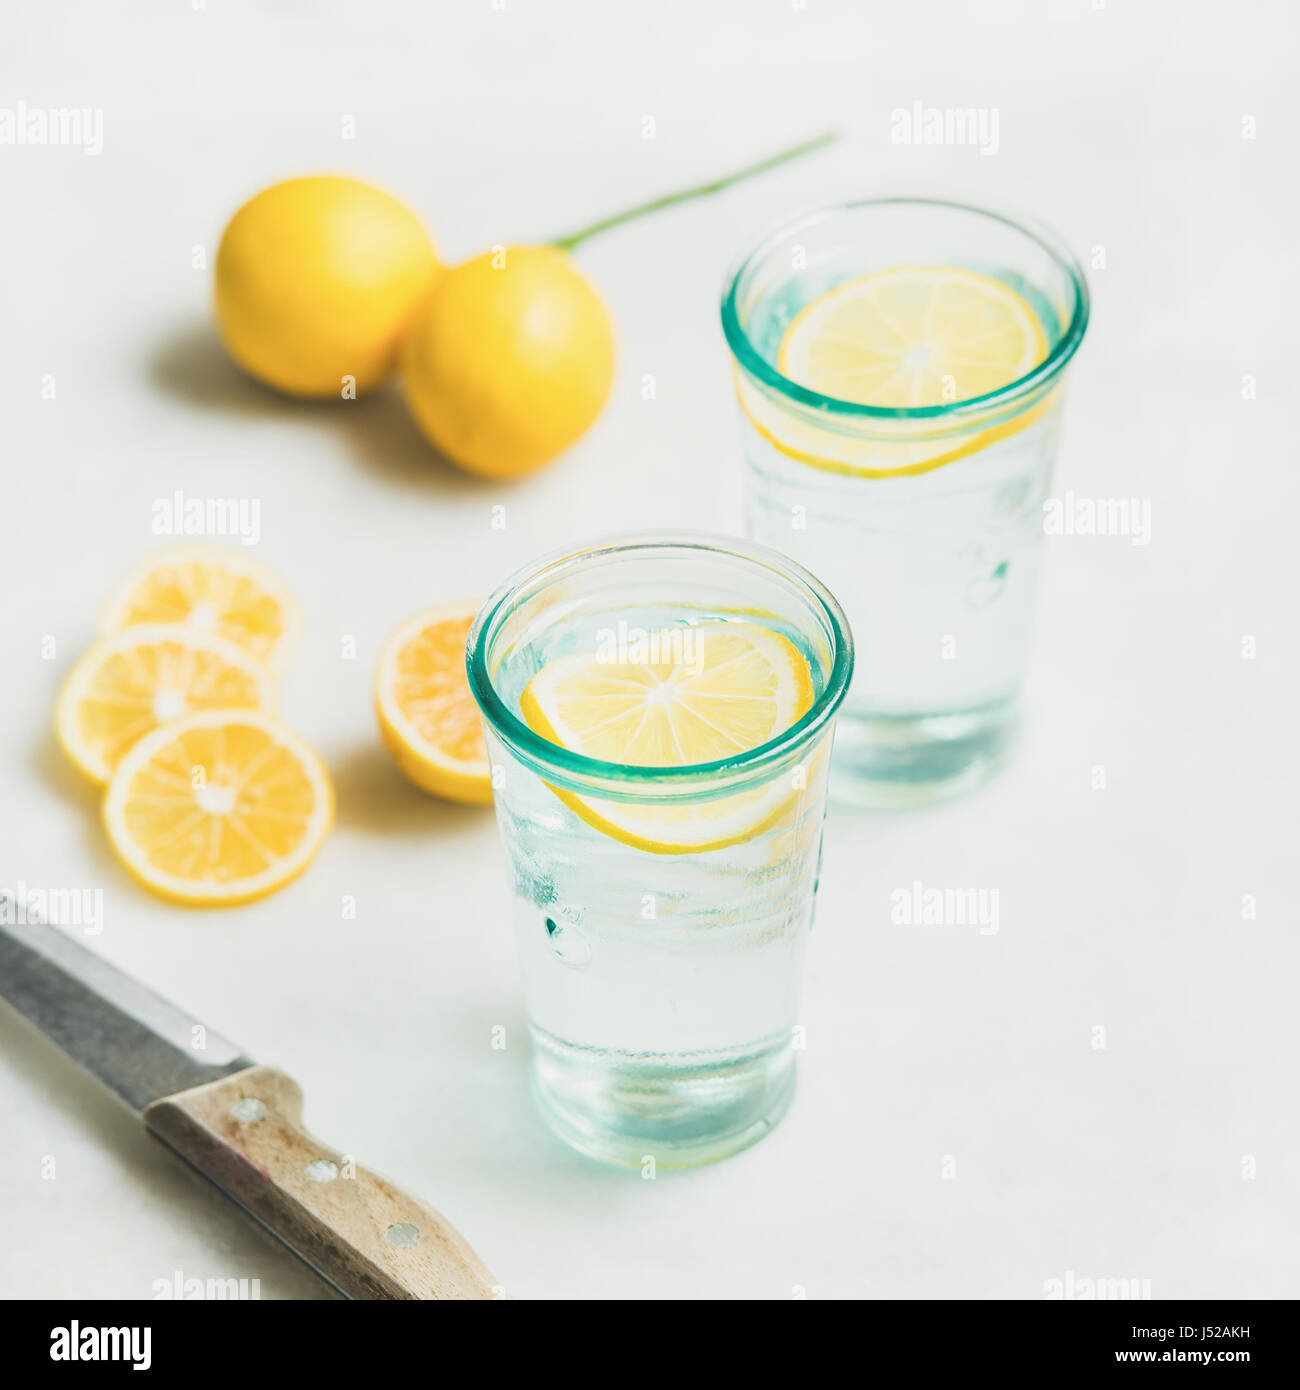 Morning detox lemon water in glasses and fresh lemons over marble background, selective focus, square crop. Clean - Stock Image